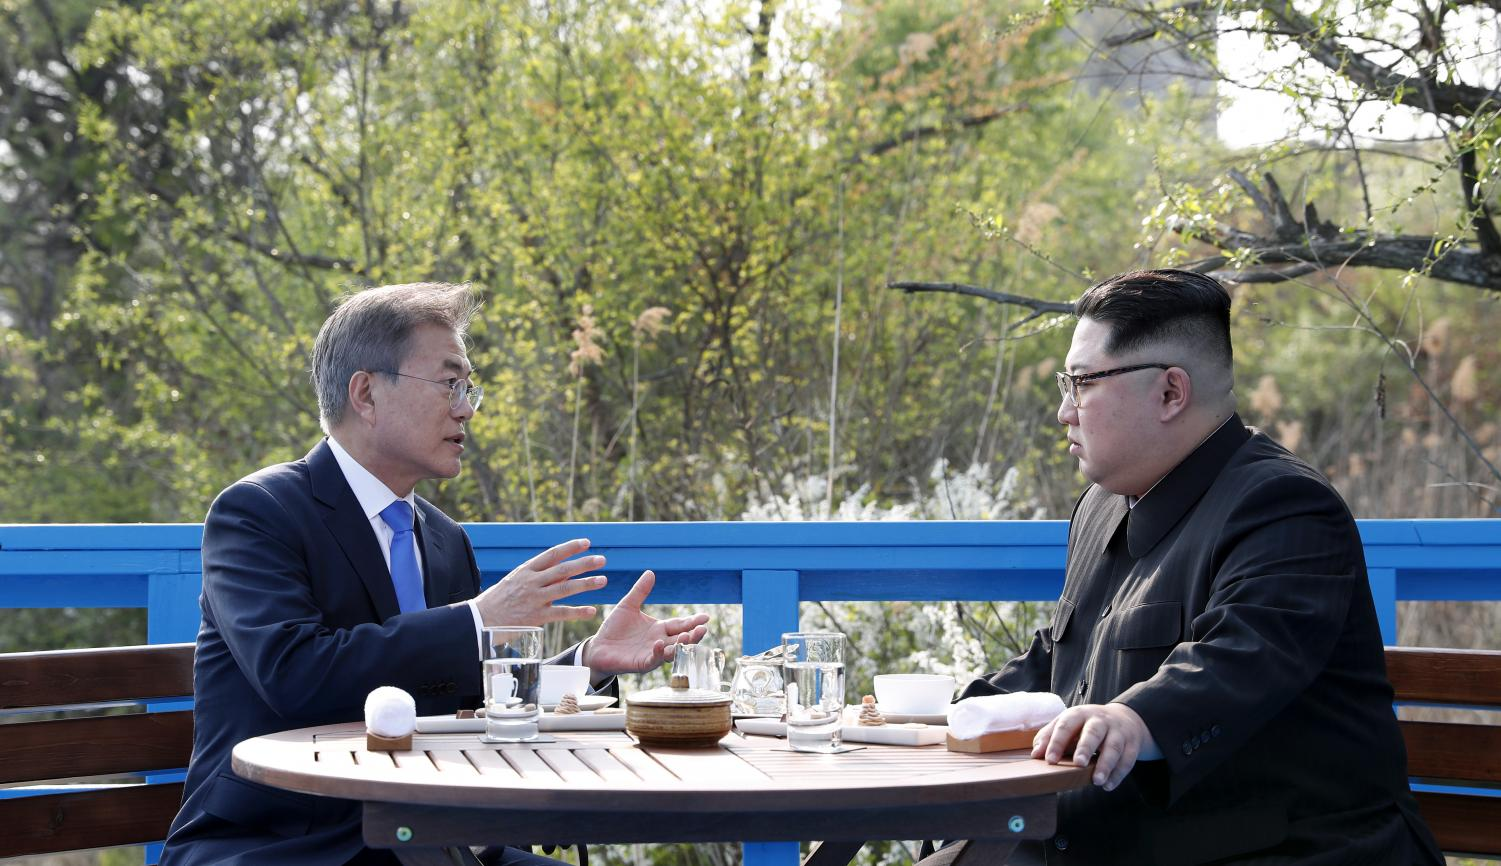 President Moon Jae-in and Chairman of the State Affairs Commission Kim Jong Un share conversations while they take a walk on the Footbridge, where there is a sign for the Military Demarcation Line (MDL) in Panmunjeom on April 27.